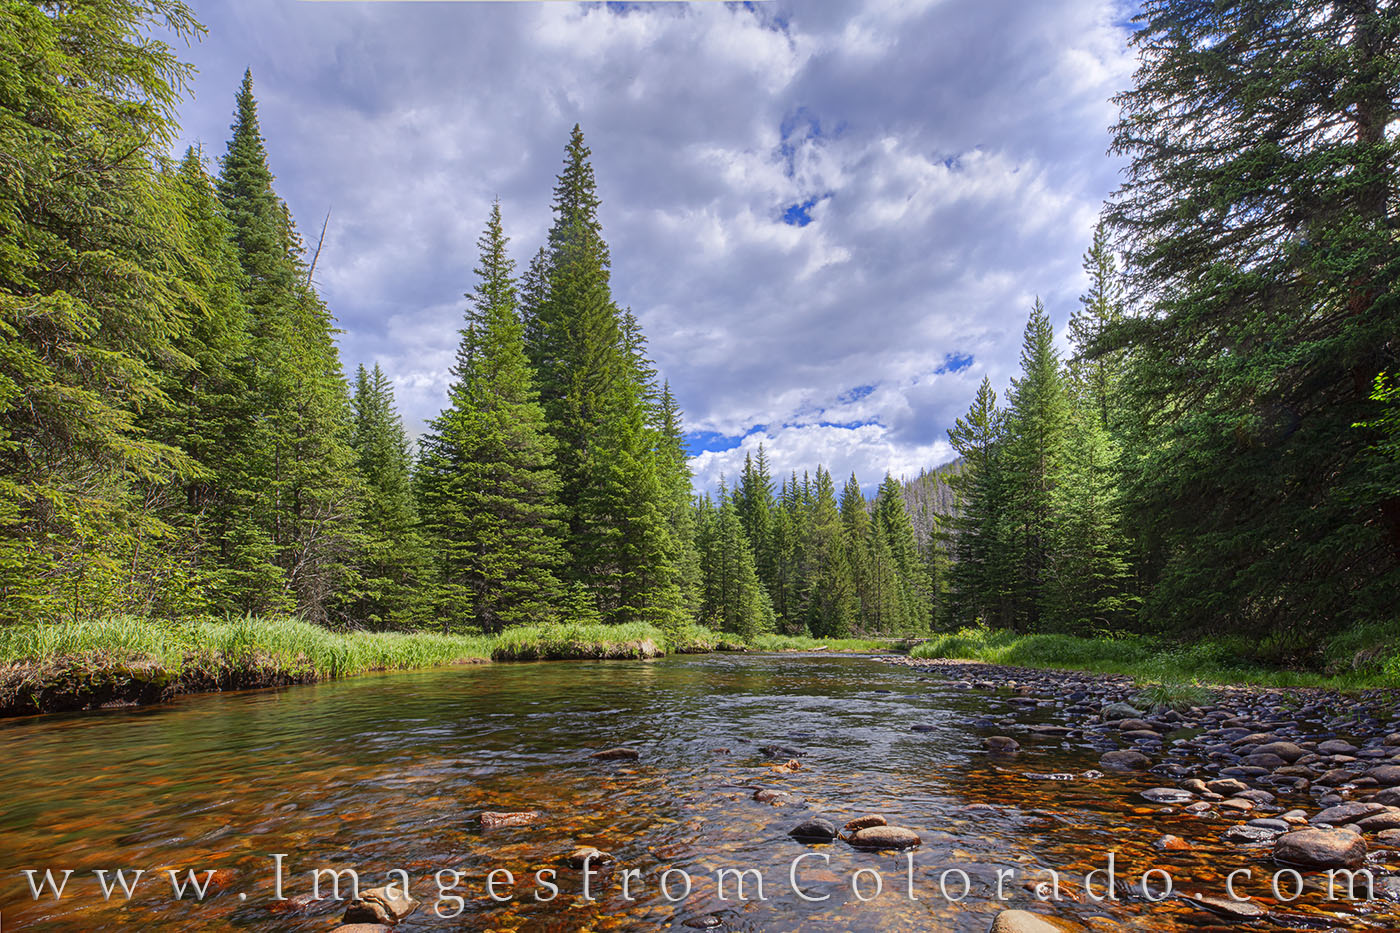 north inlets, rocky mountain national park, underwater, stream, creek, mountains, trout, grand lake, north inlets trail, photo